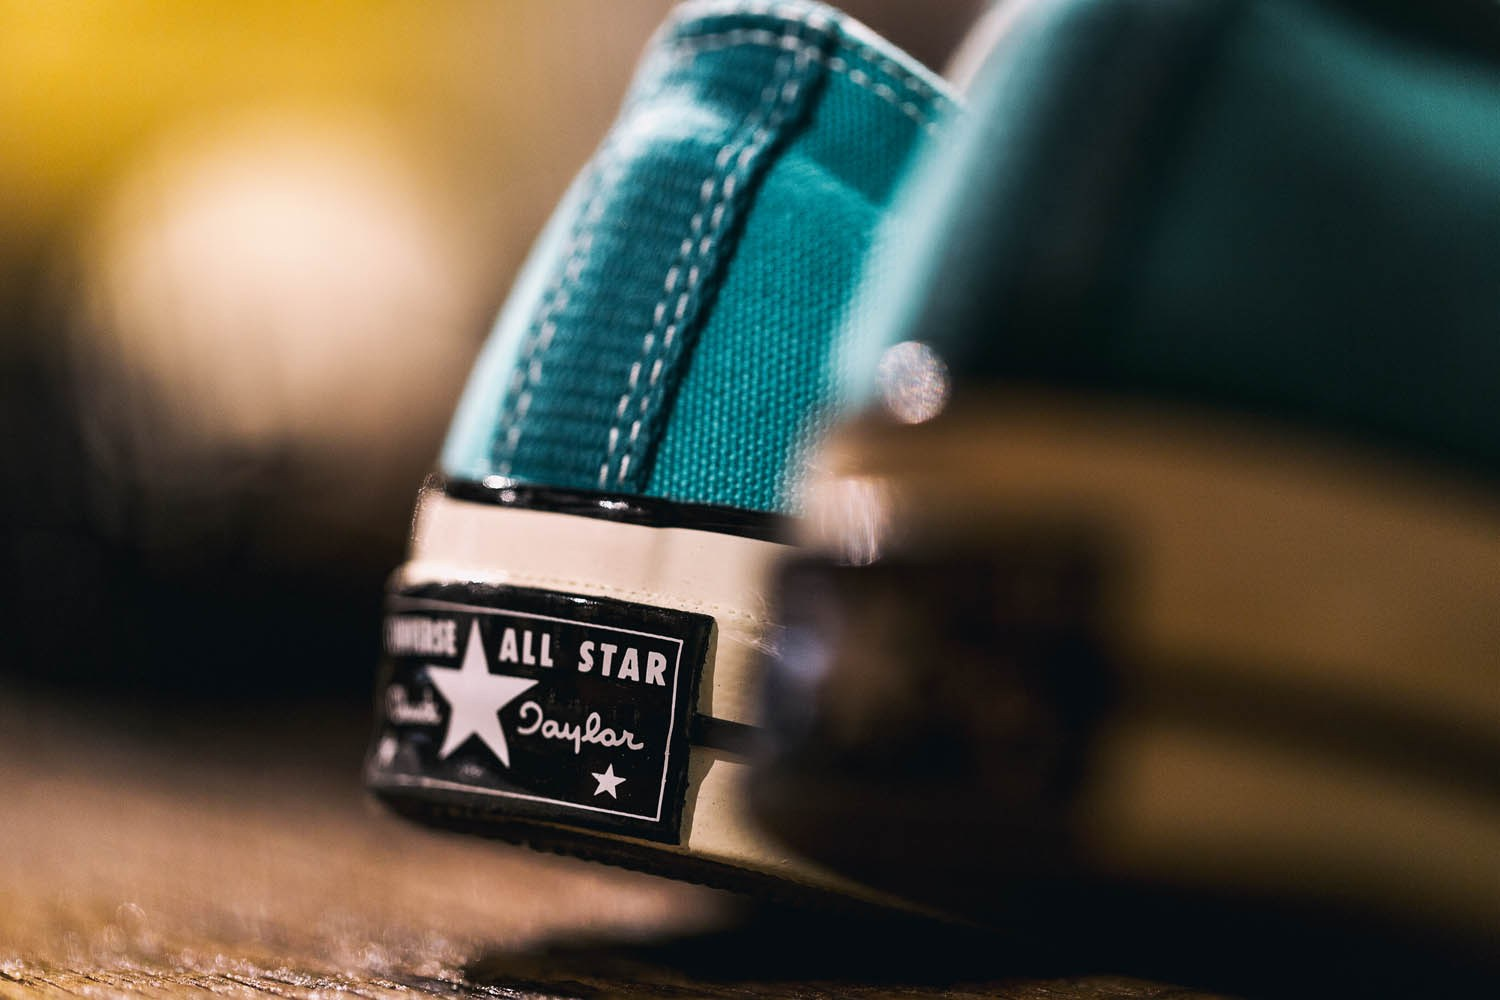 converse-shows-its-colors-with-its-latest-chuck-taylor-all-star-70s-release-19